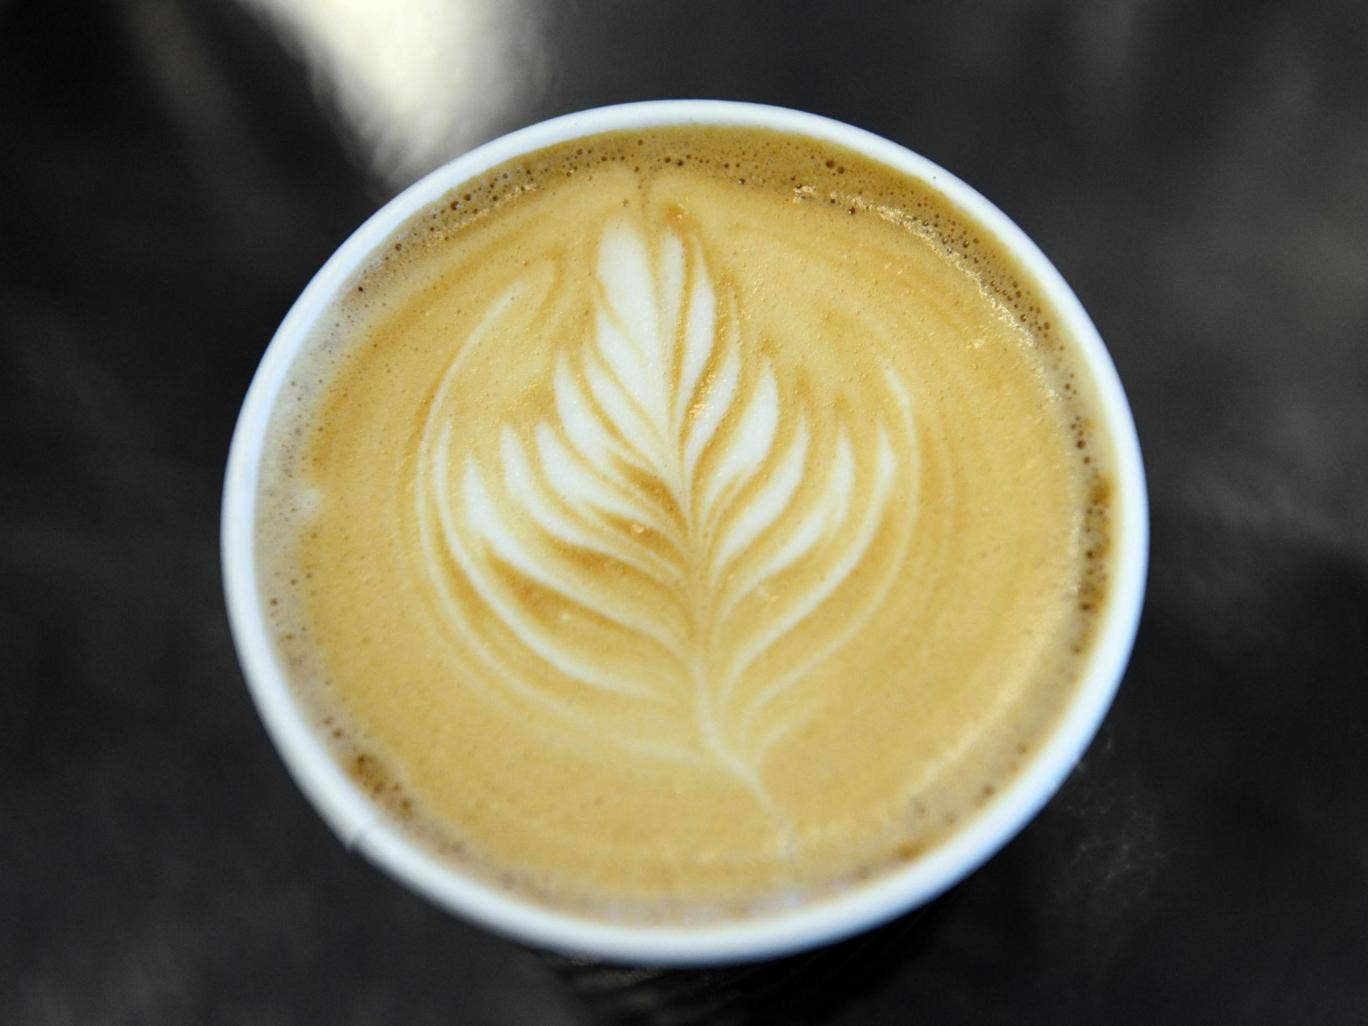 A Harvard study suggests coffee could halve risk of suicide